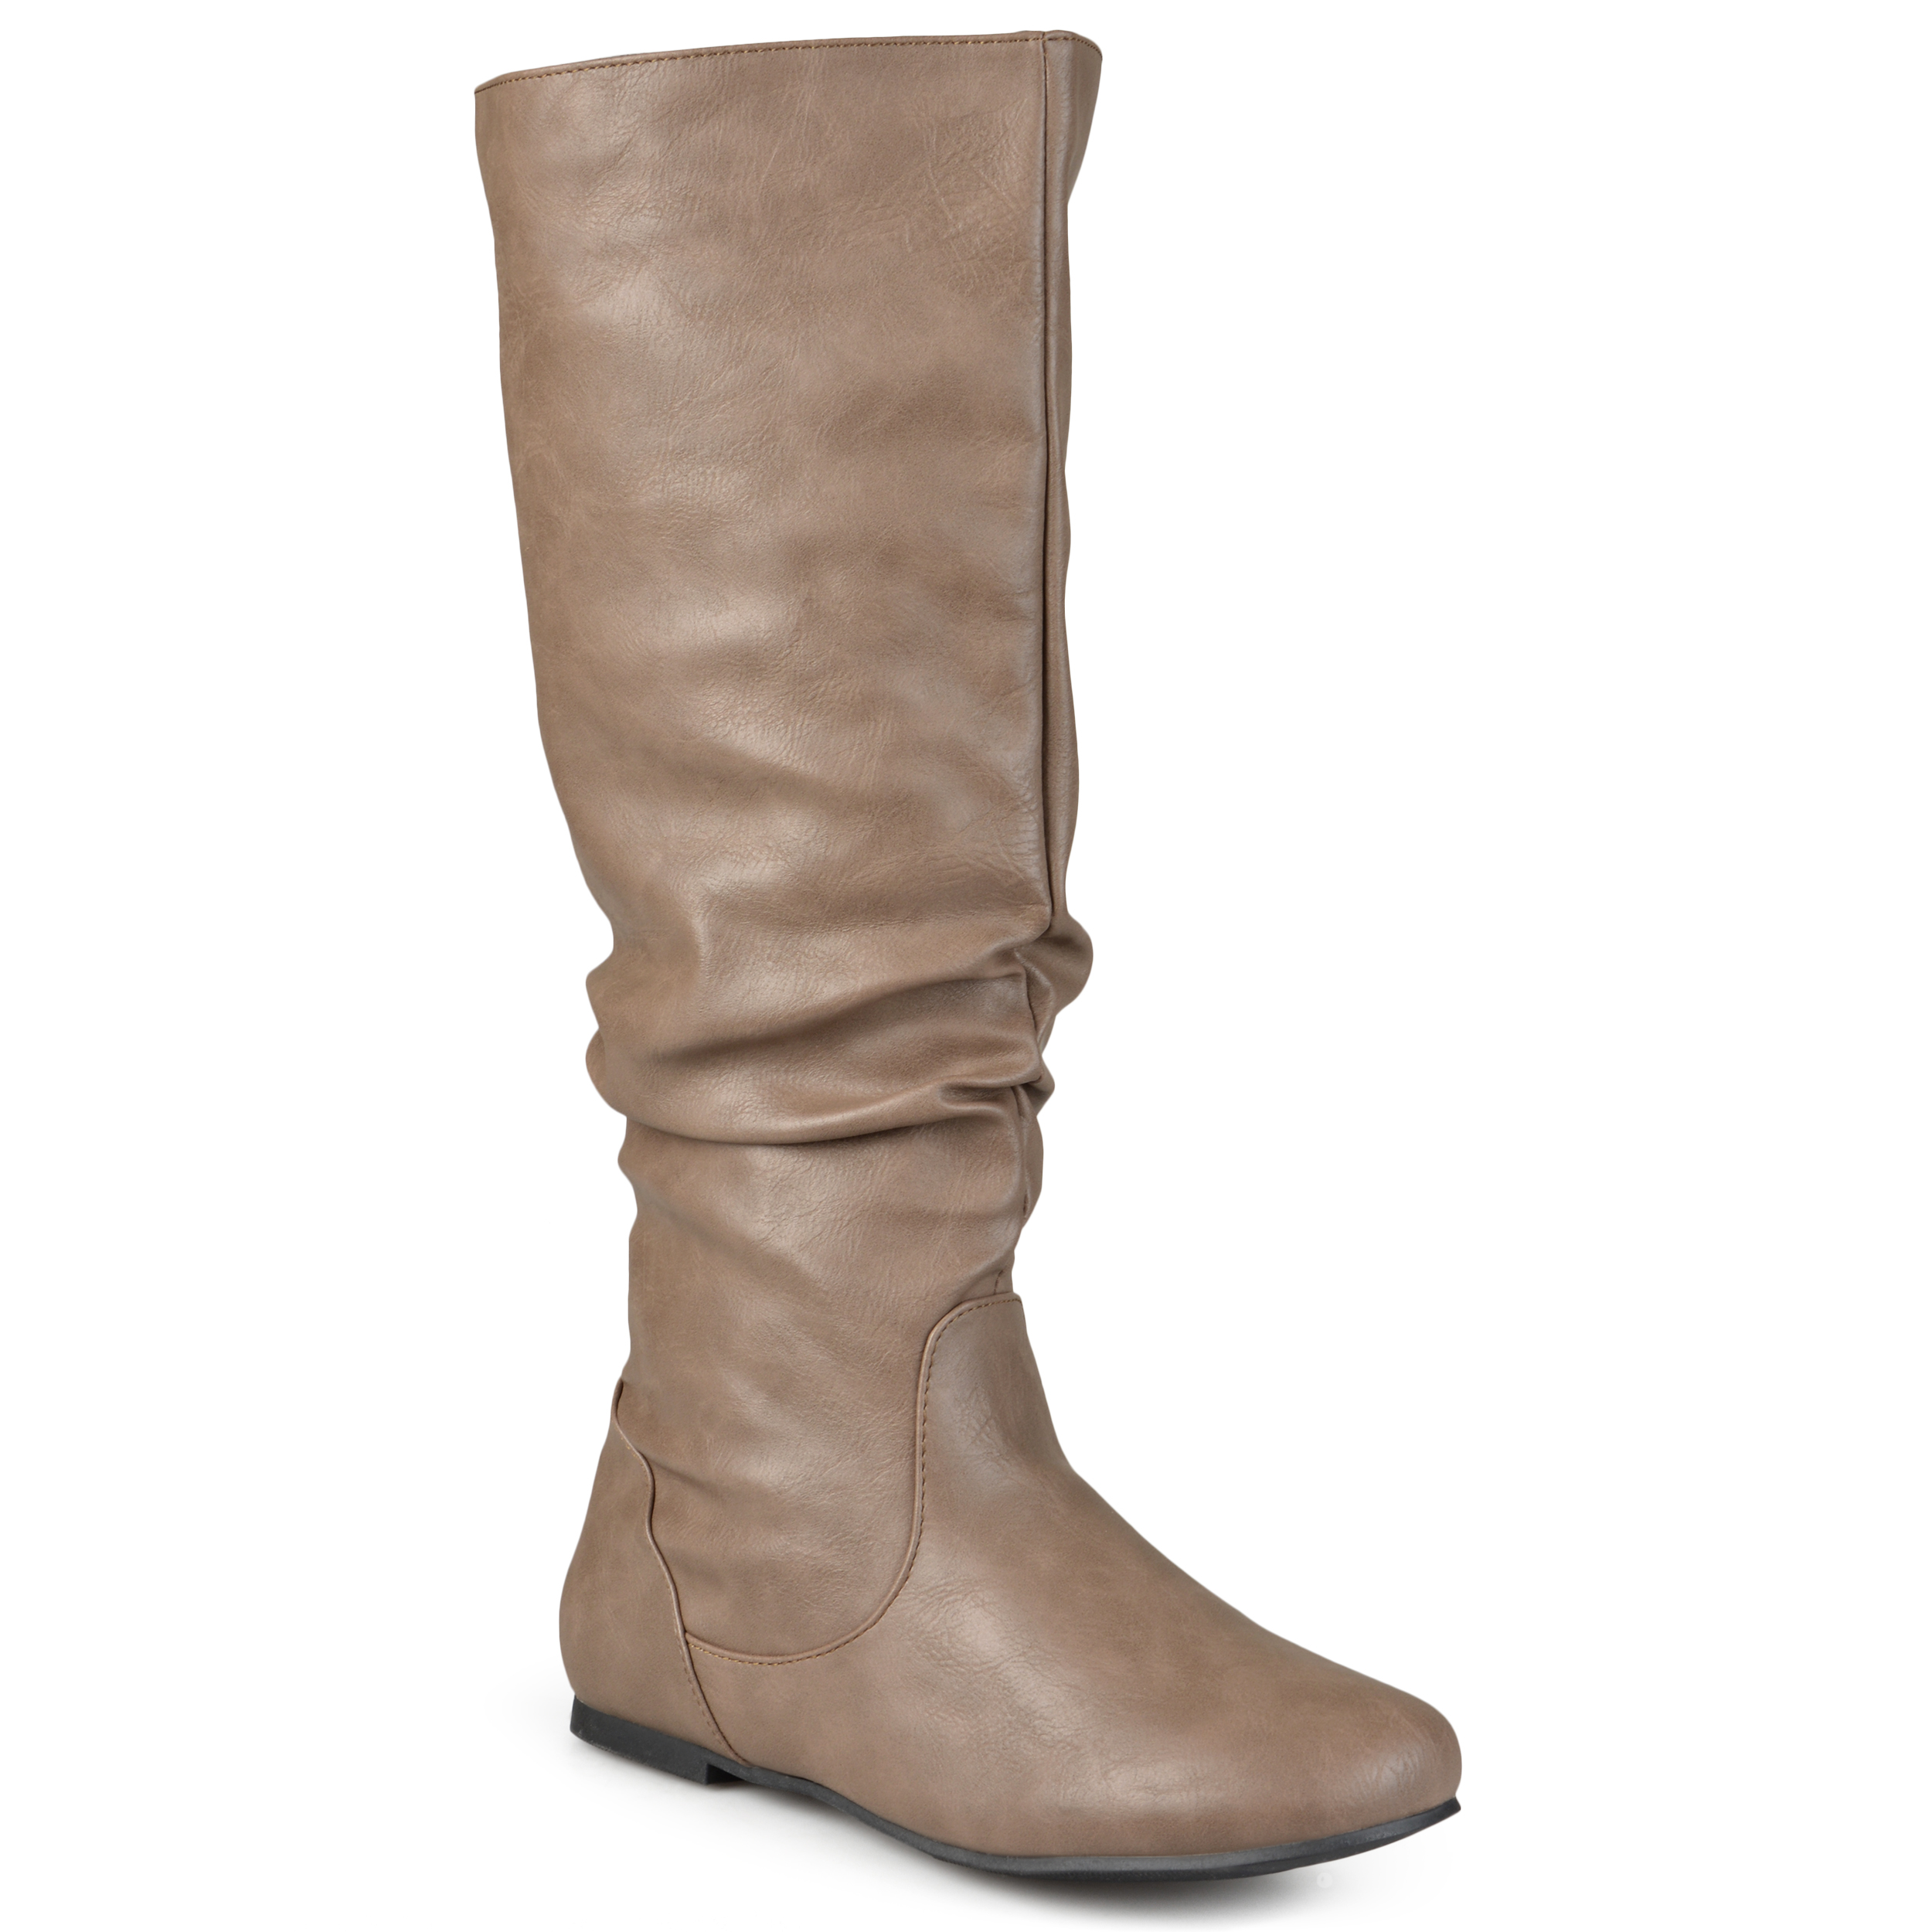 Journee Collection Womens Wide Calf Slouchy Round Toe Boots (PU REBECCA-02) at Sears.com